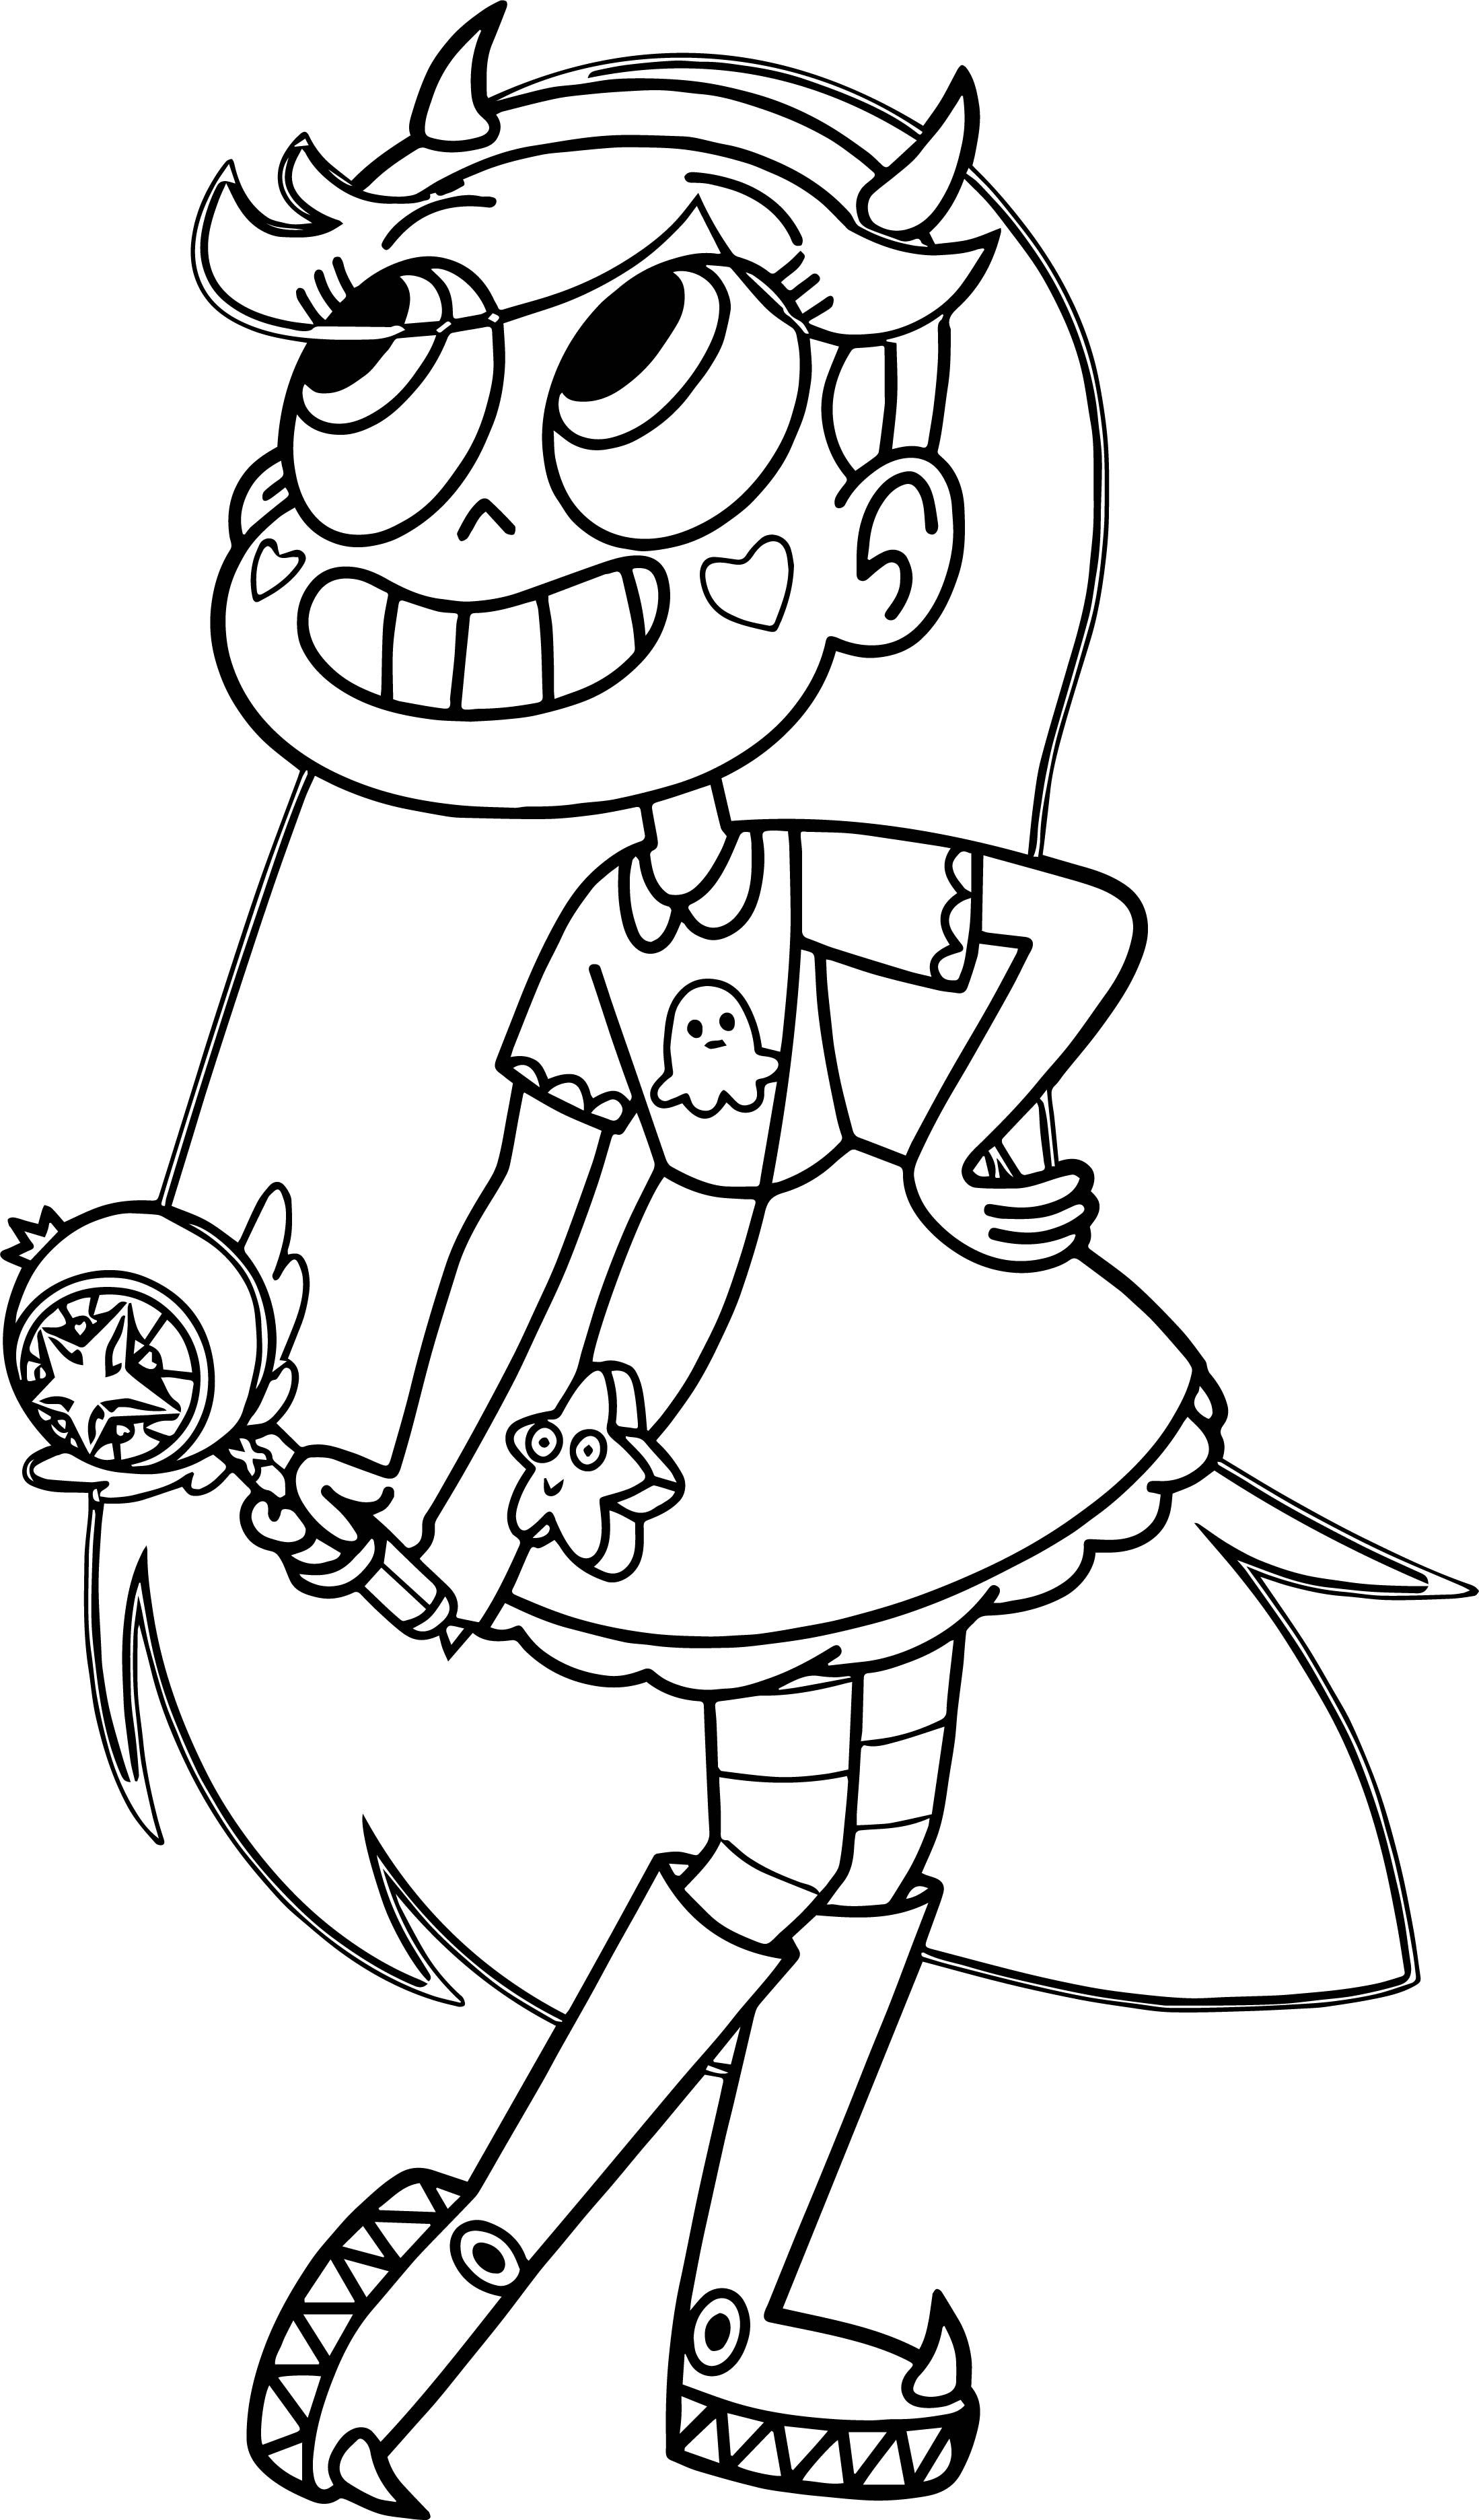 Cool Star Vs The Forces Of Evil Butterfly Coloring Page